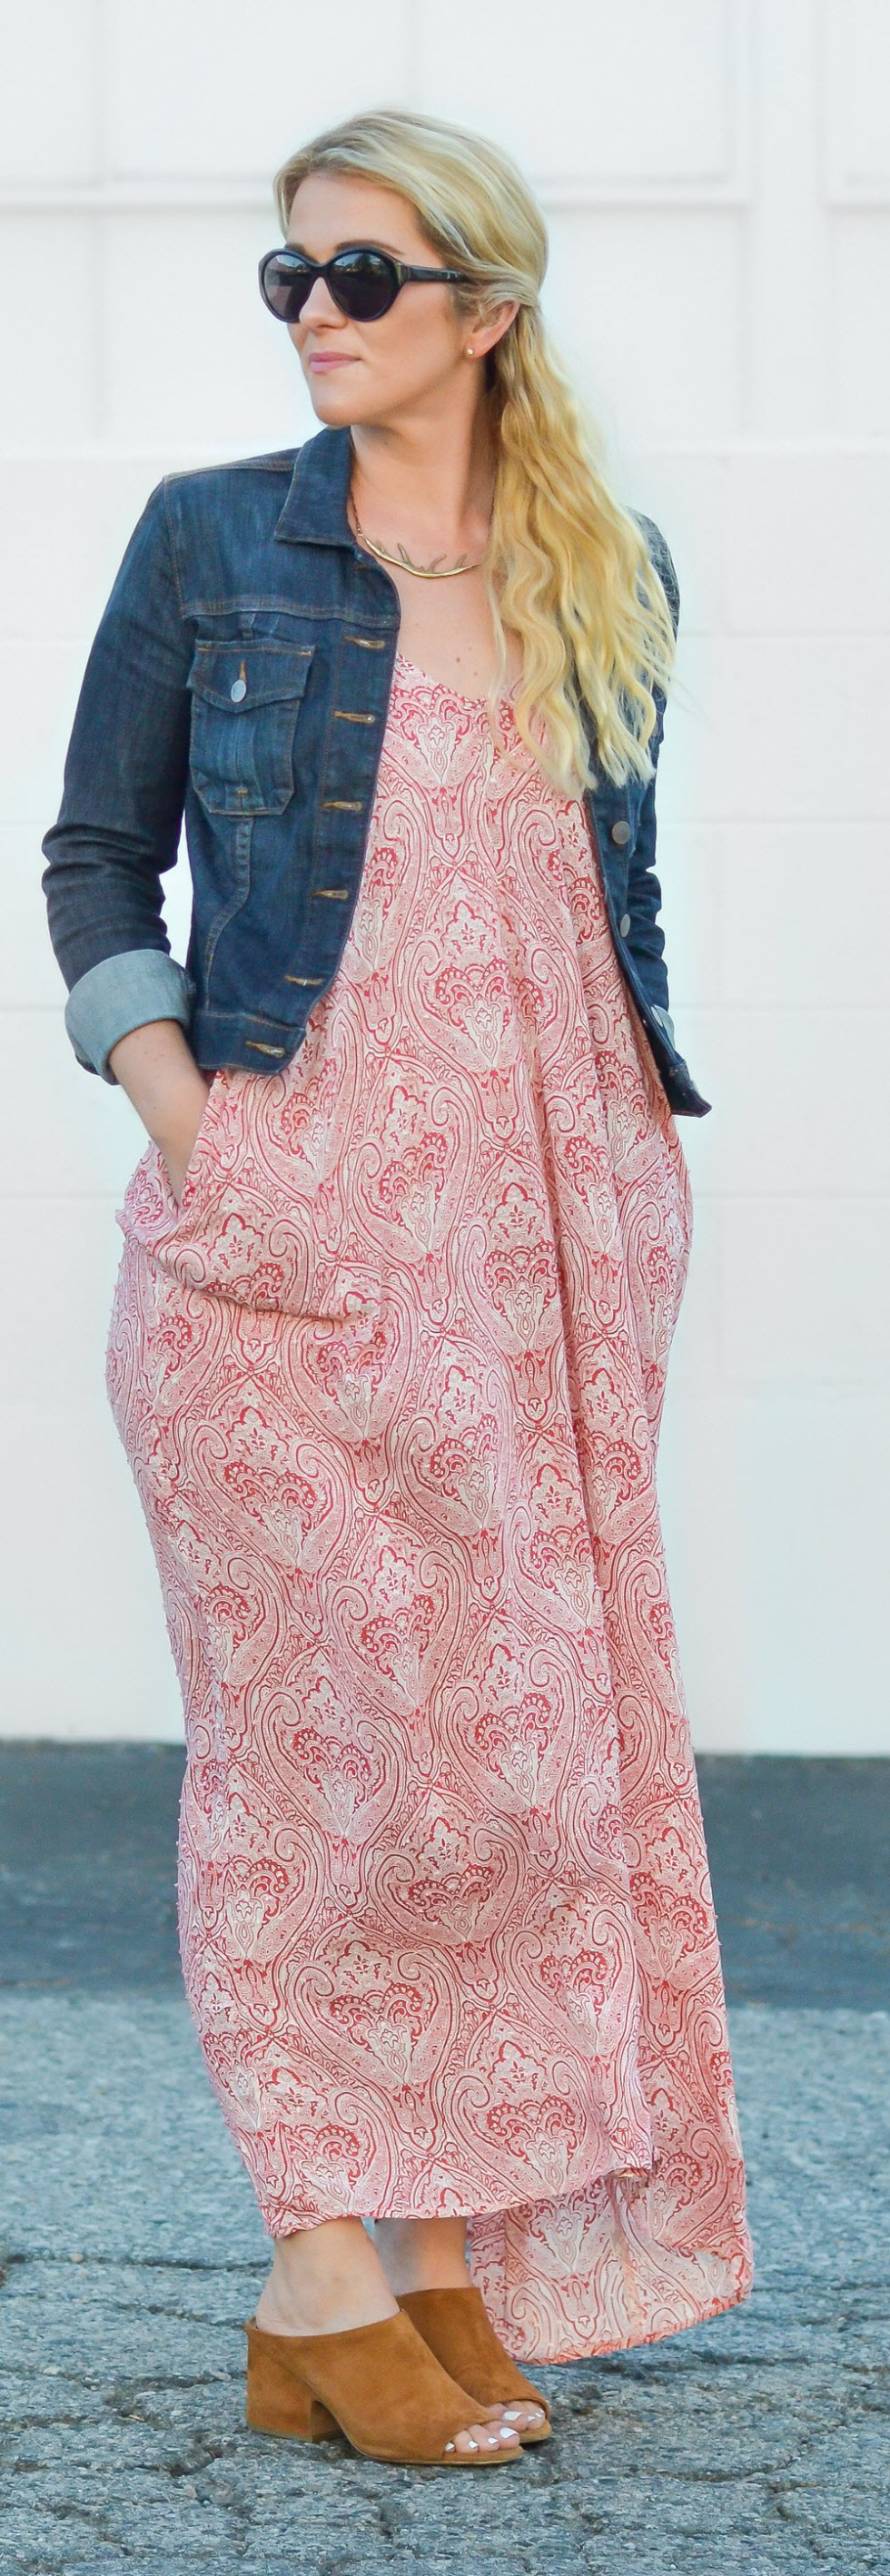 Casual Maxi Dress Outfit | Print Maxi Dress and Dark Denim Jacket Outfit